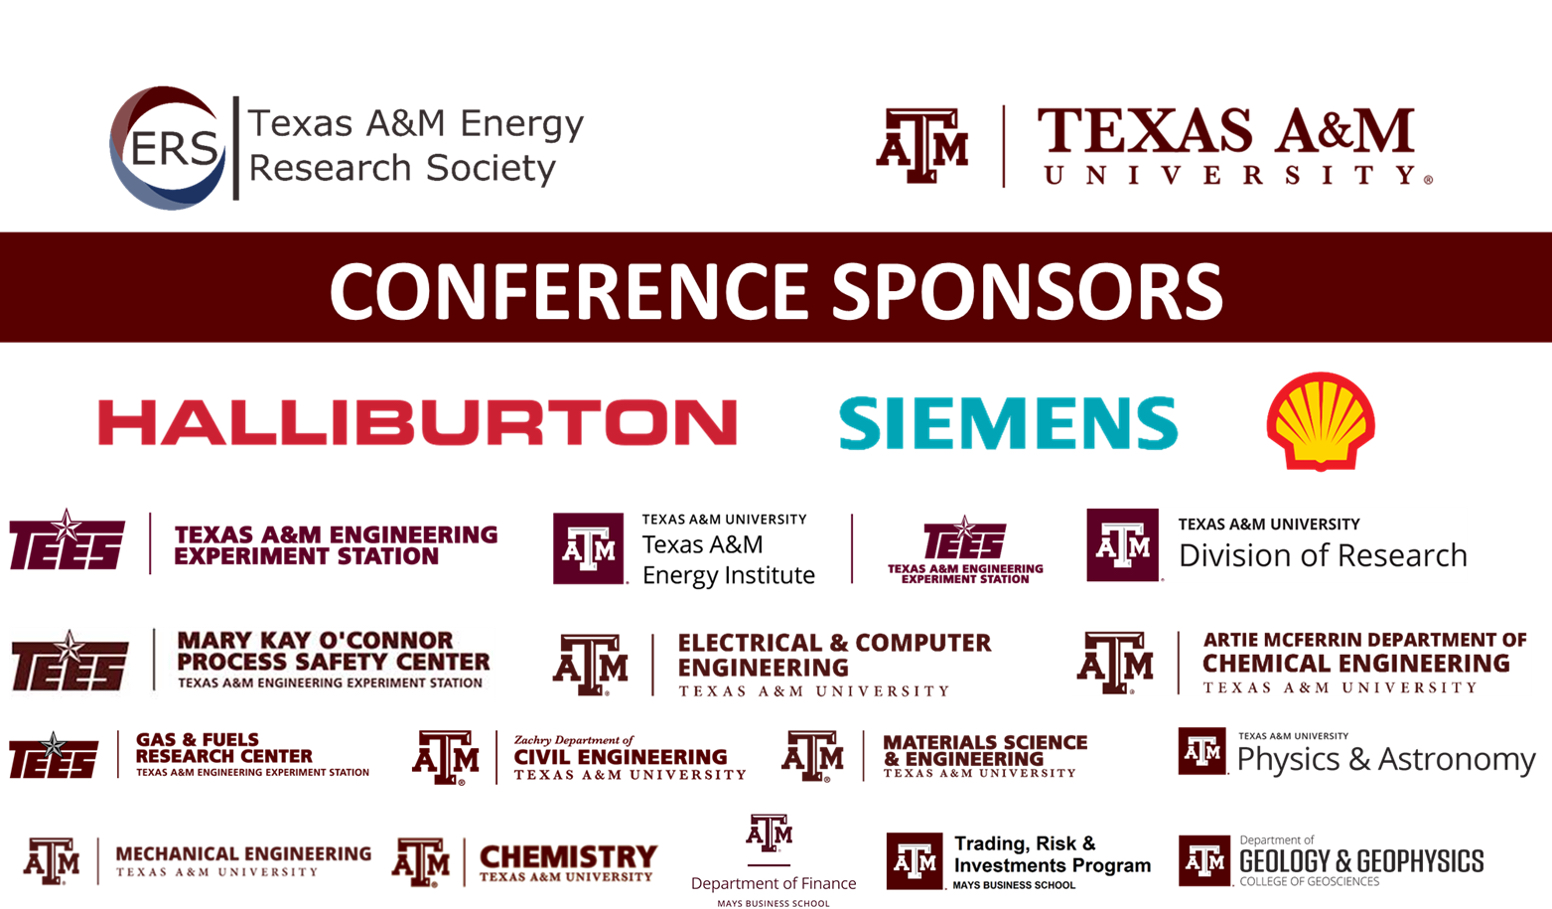 Texas A&M Conference on Energy: 2019 Sponsors